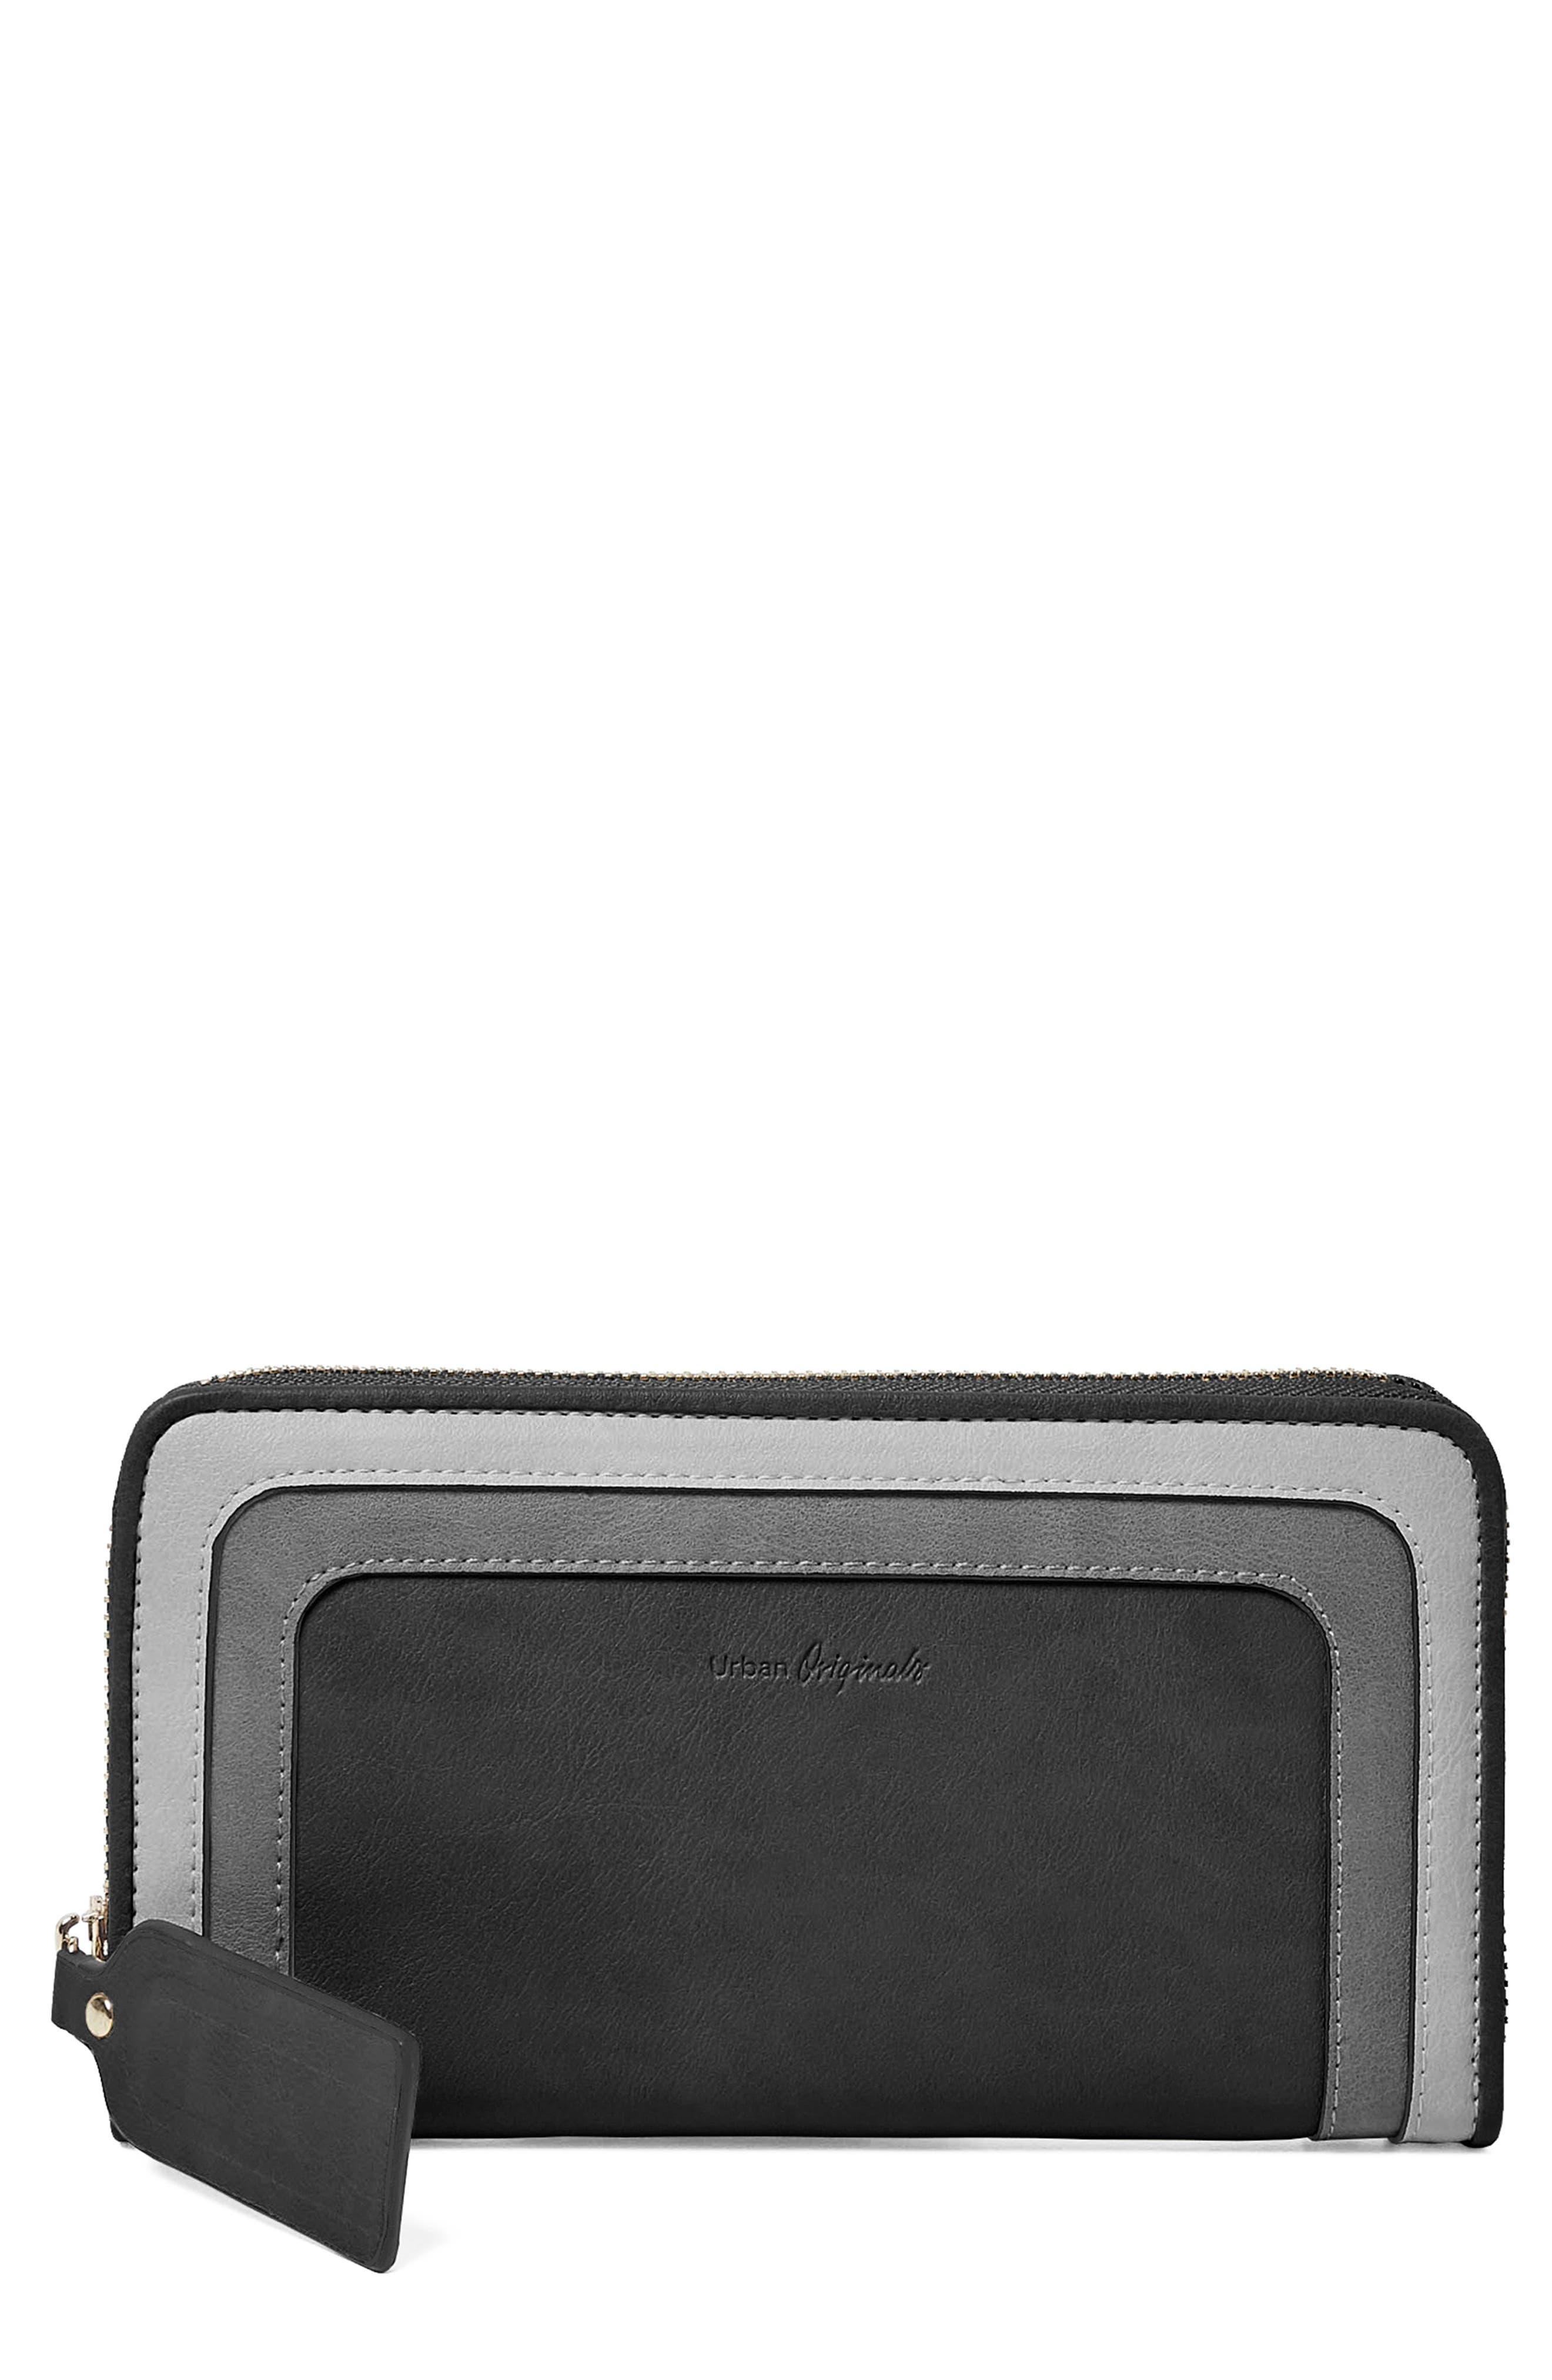 Drama Queen Faux Leather Zip Wallet,                             Main thumbnail 1, color,                             001